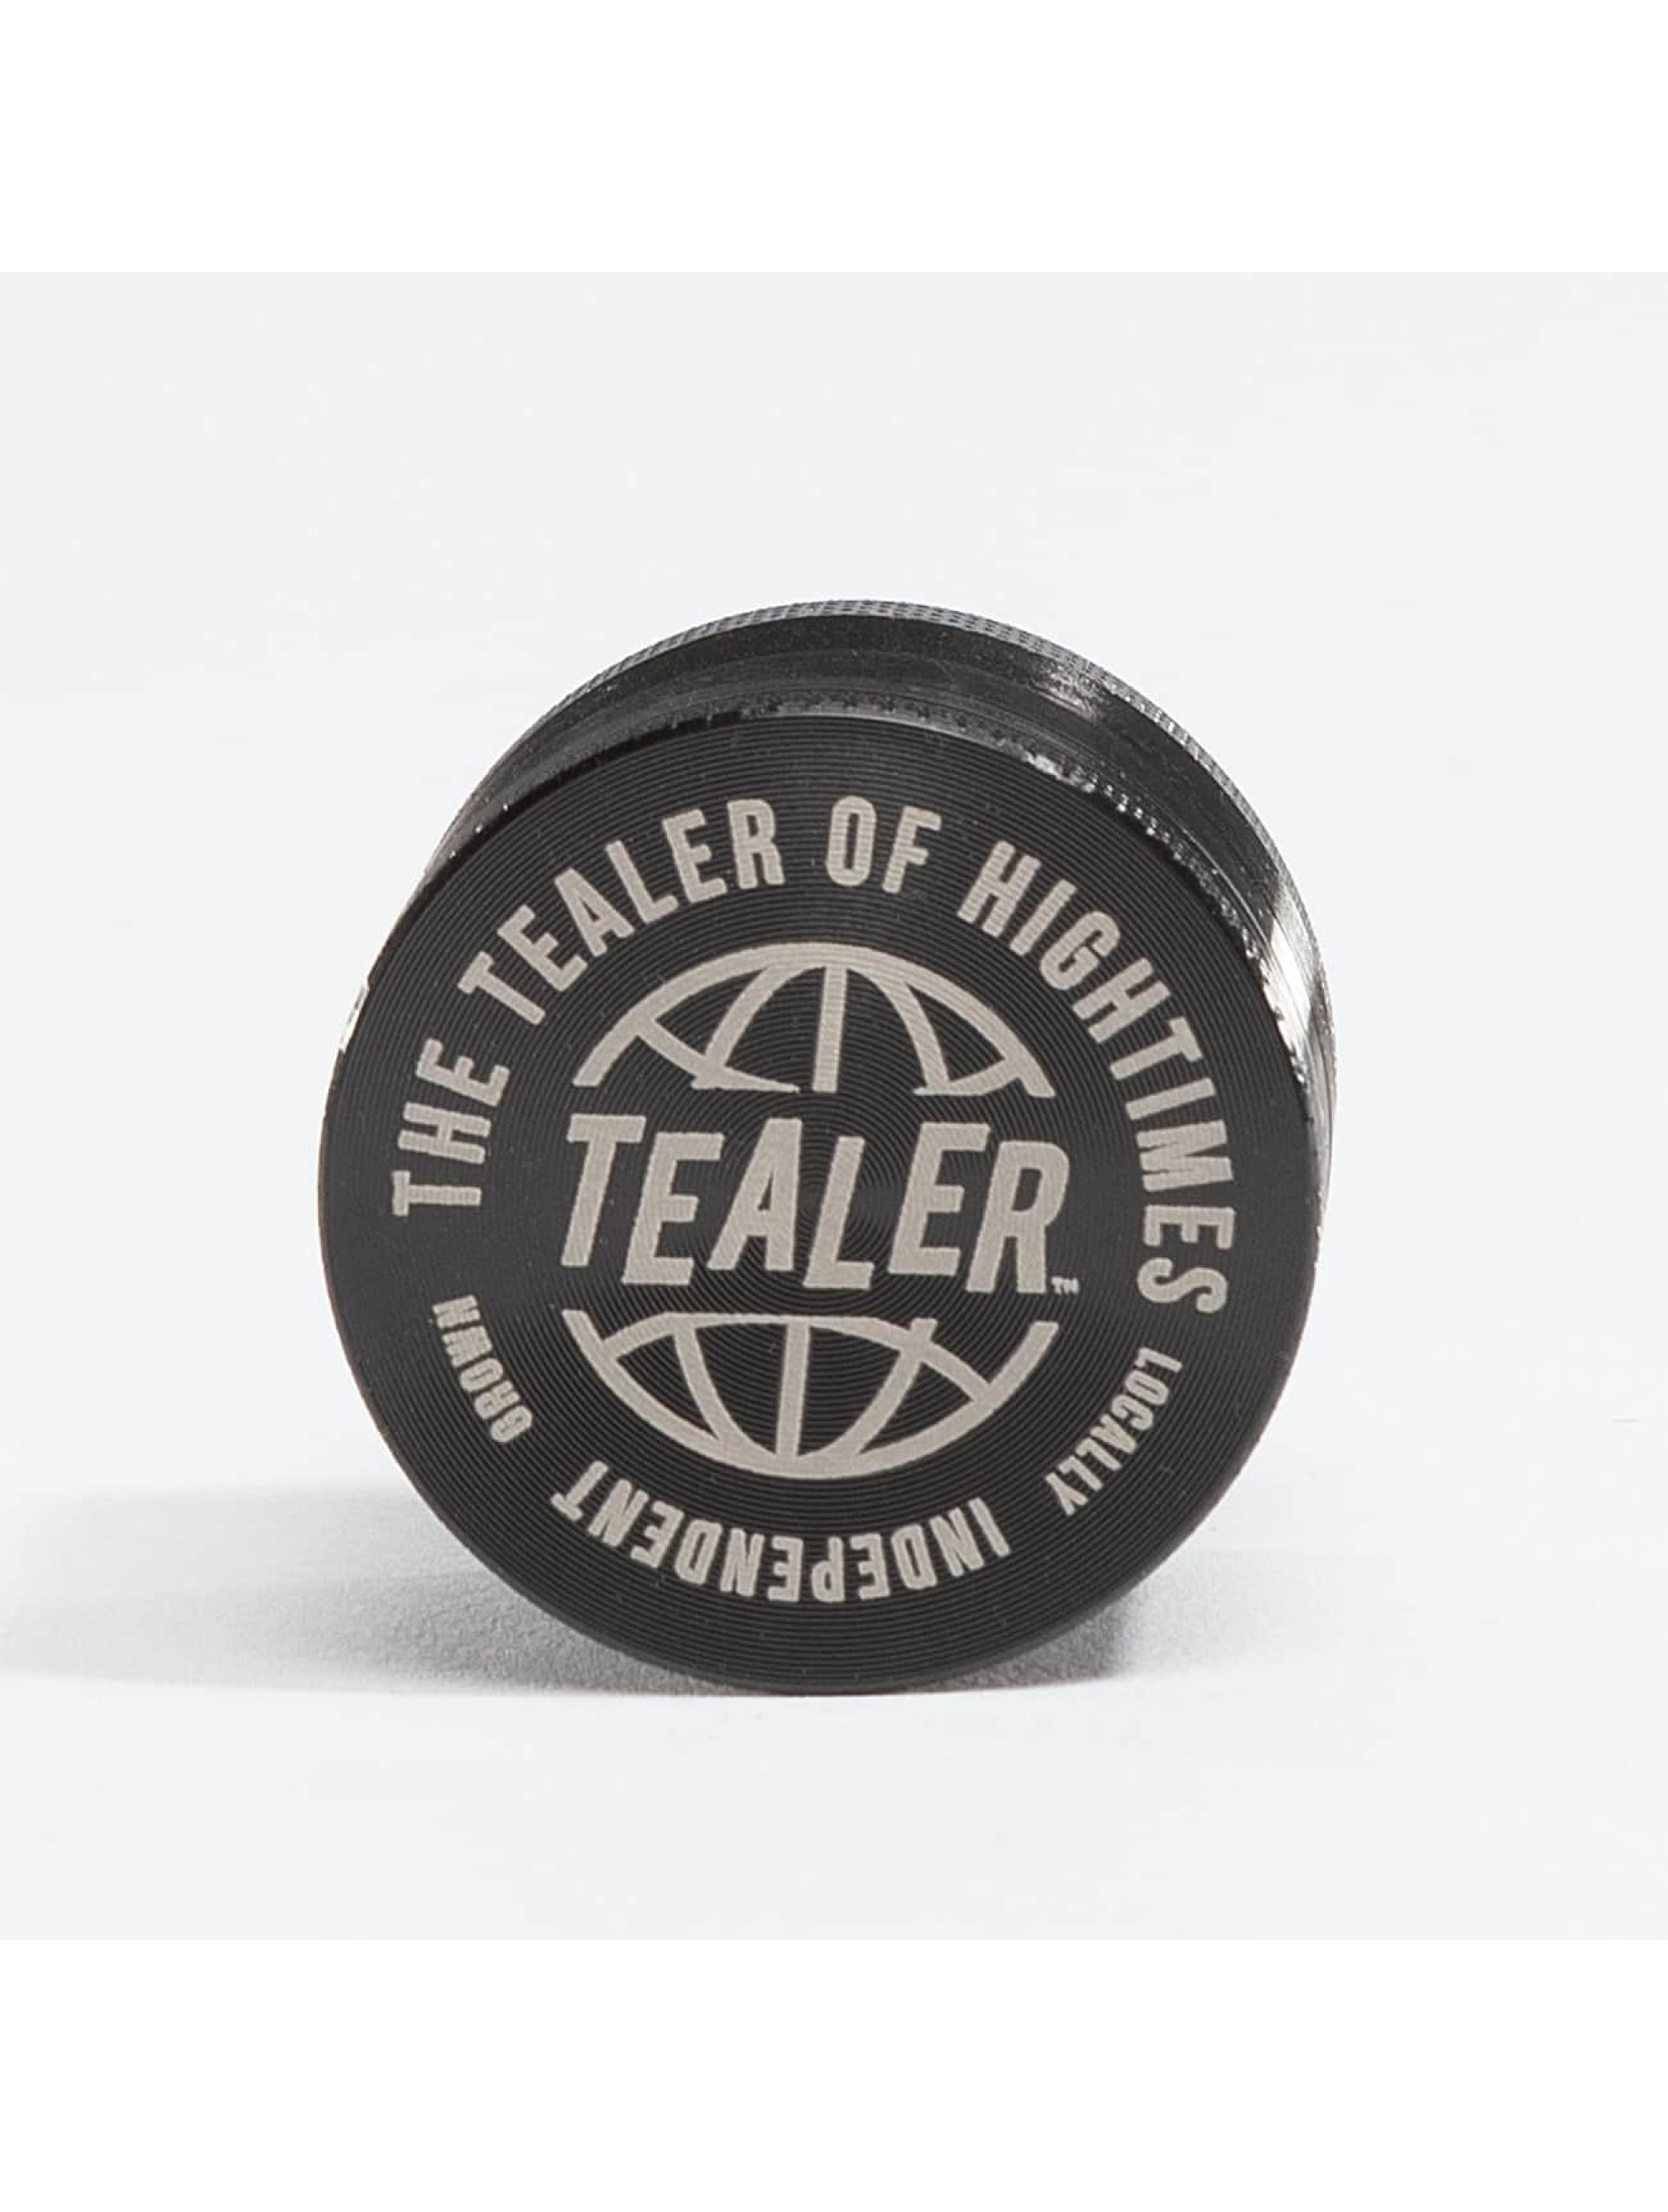 Tealer Other Hightimes black